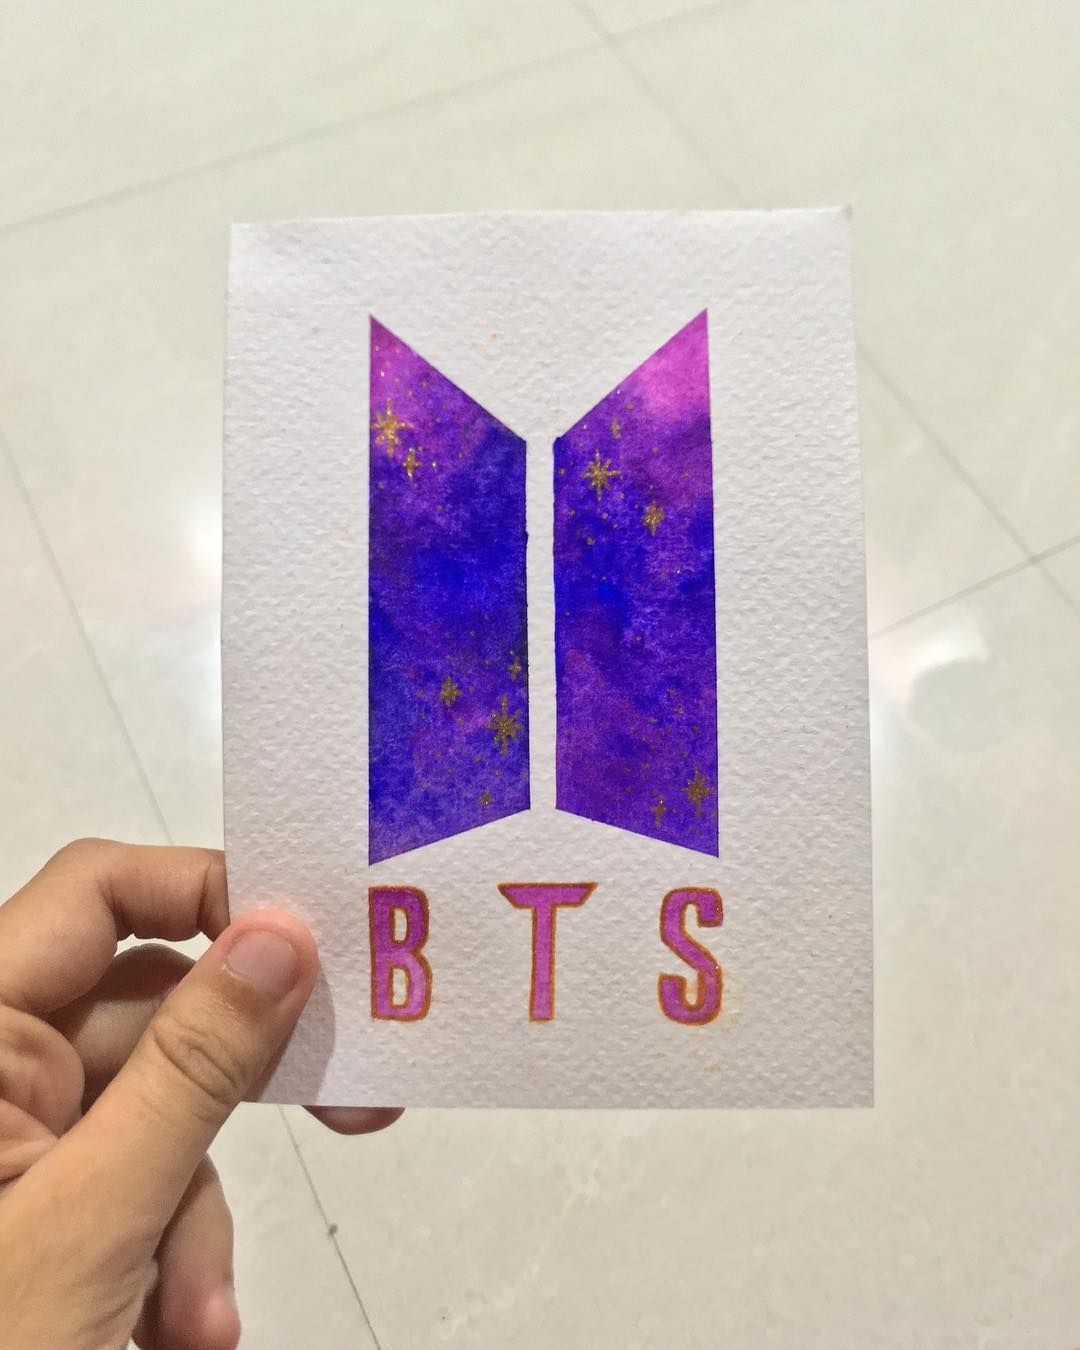 A Little Card I Made For Purpletae For Her Birthday Still Haven T Given It To Her I Love Happy Birthday Cards Handmade Bts Birthdays Birthday Cards Diy